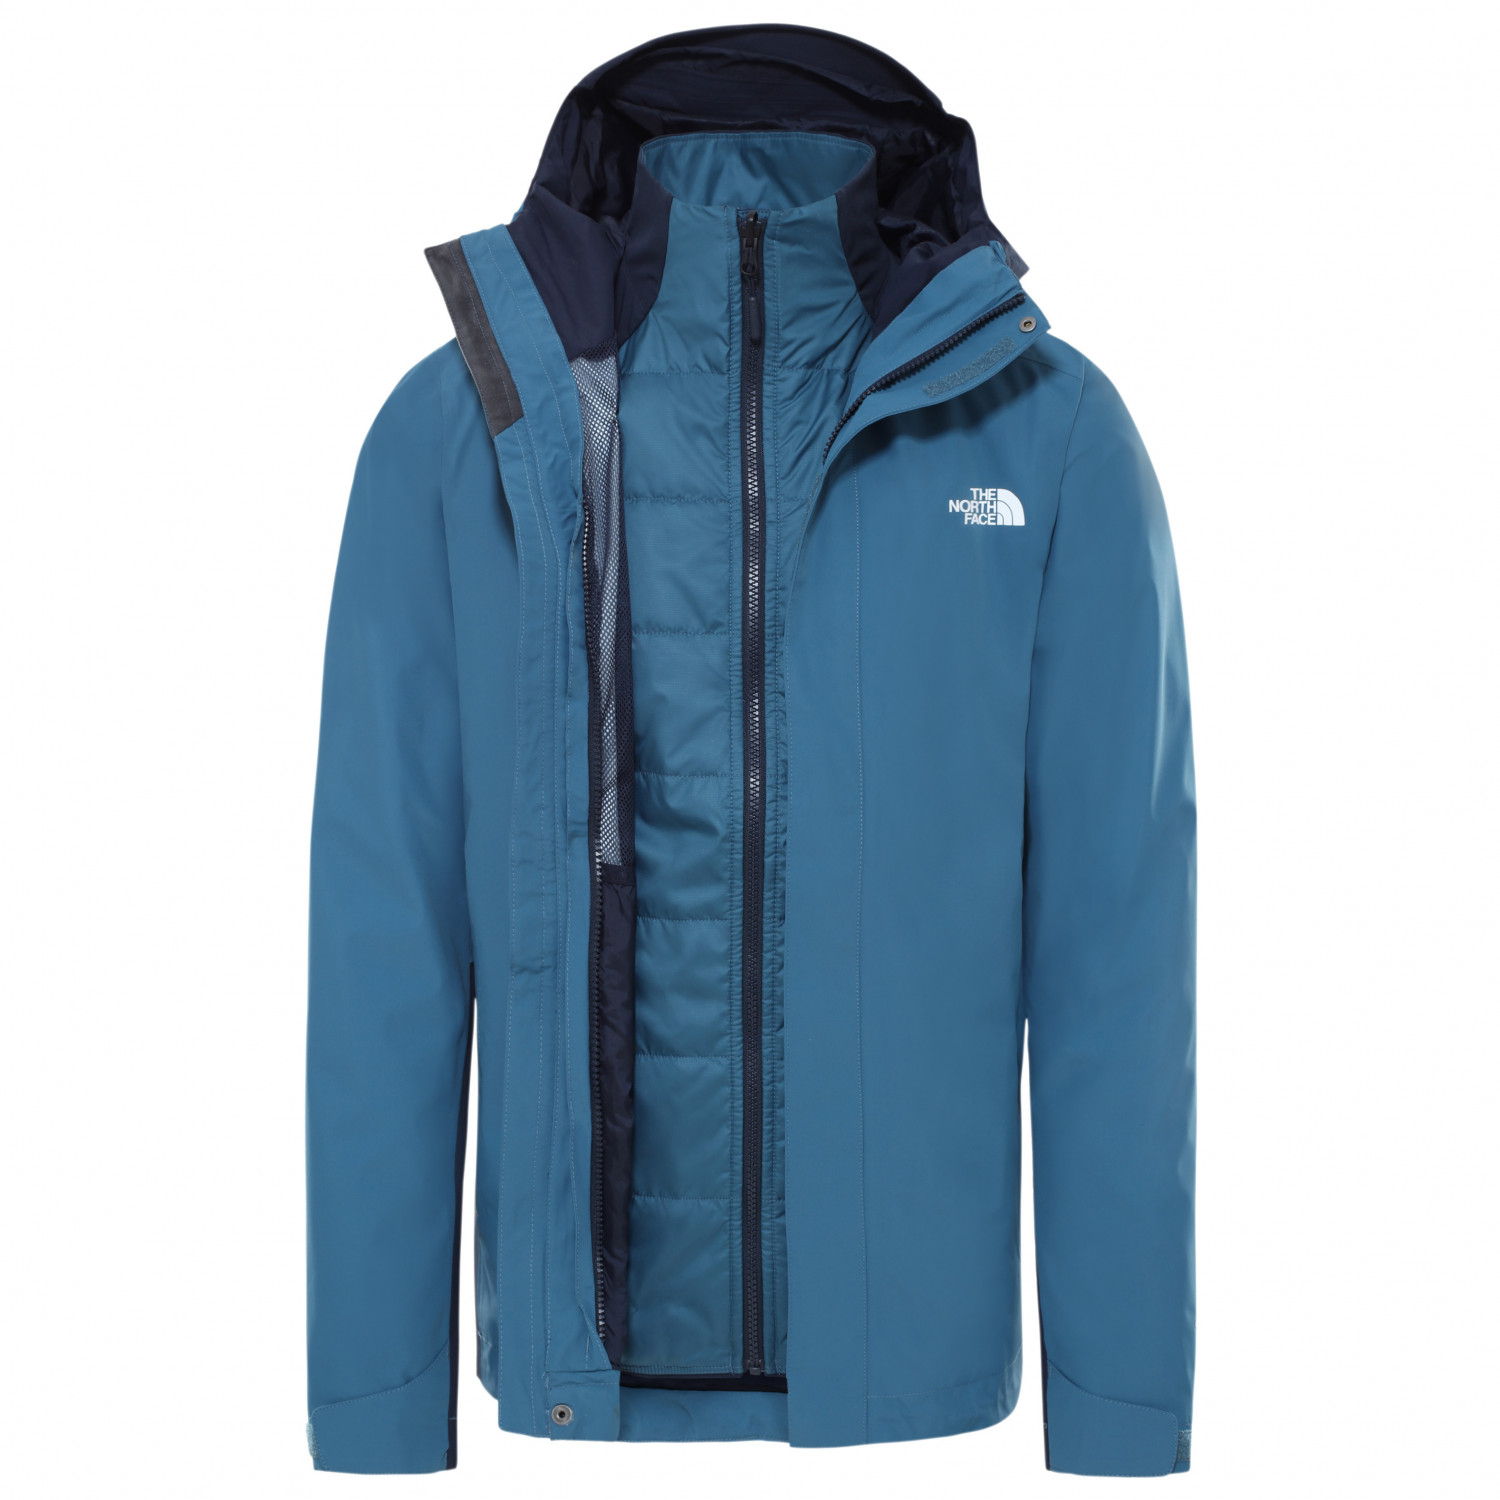 4d25b5234 The North Face - Merak Triclimate - 3-in-1 jacket